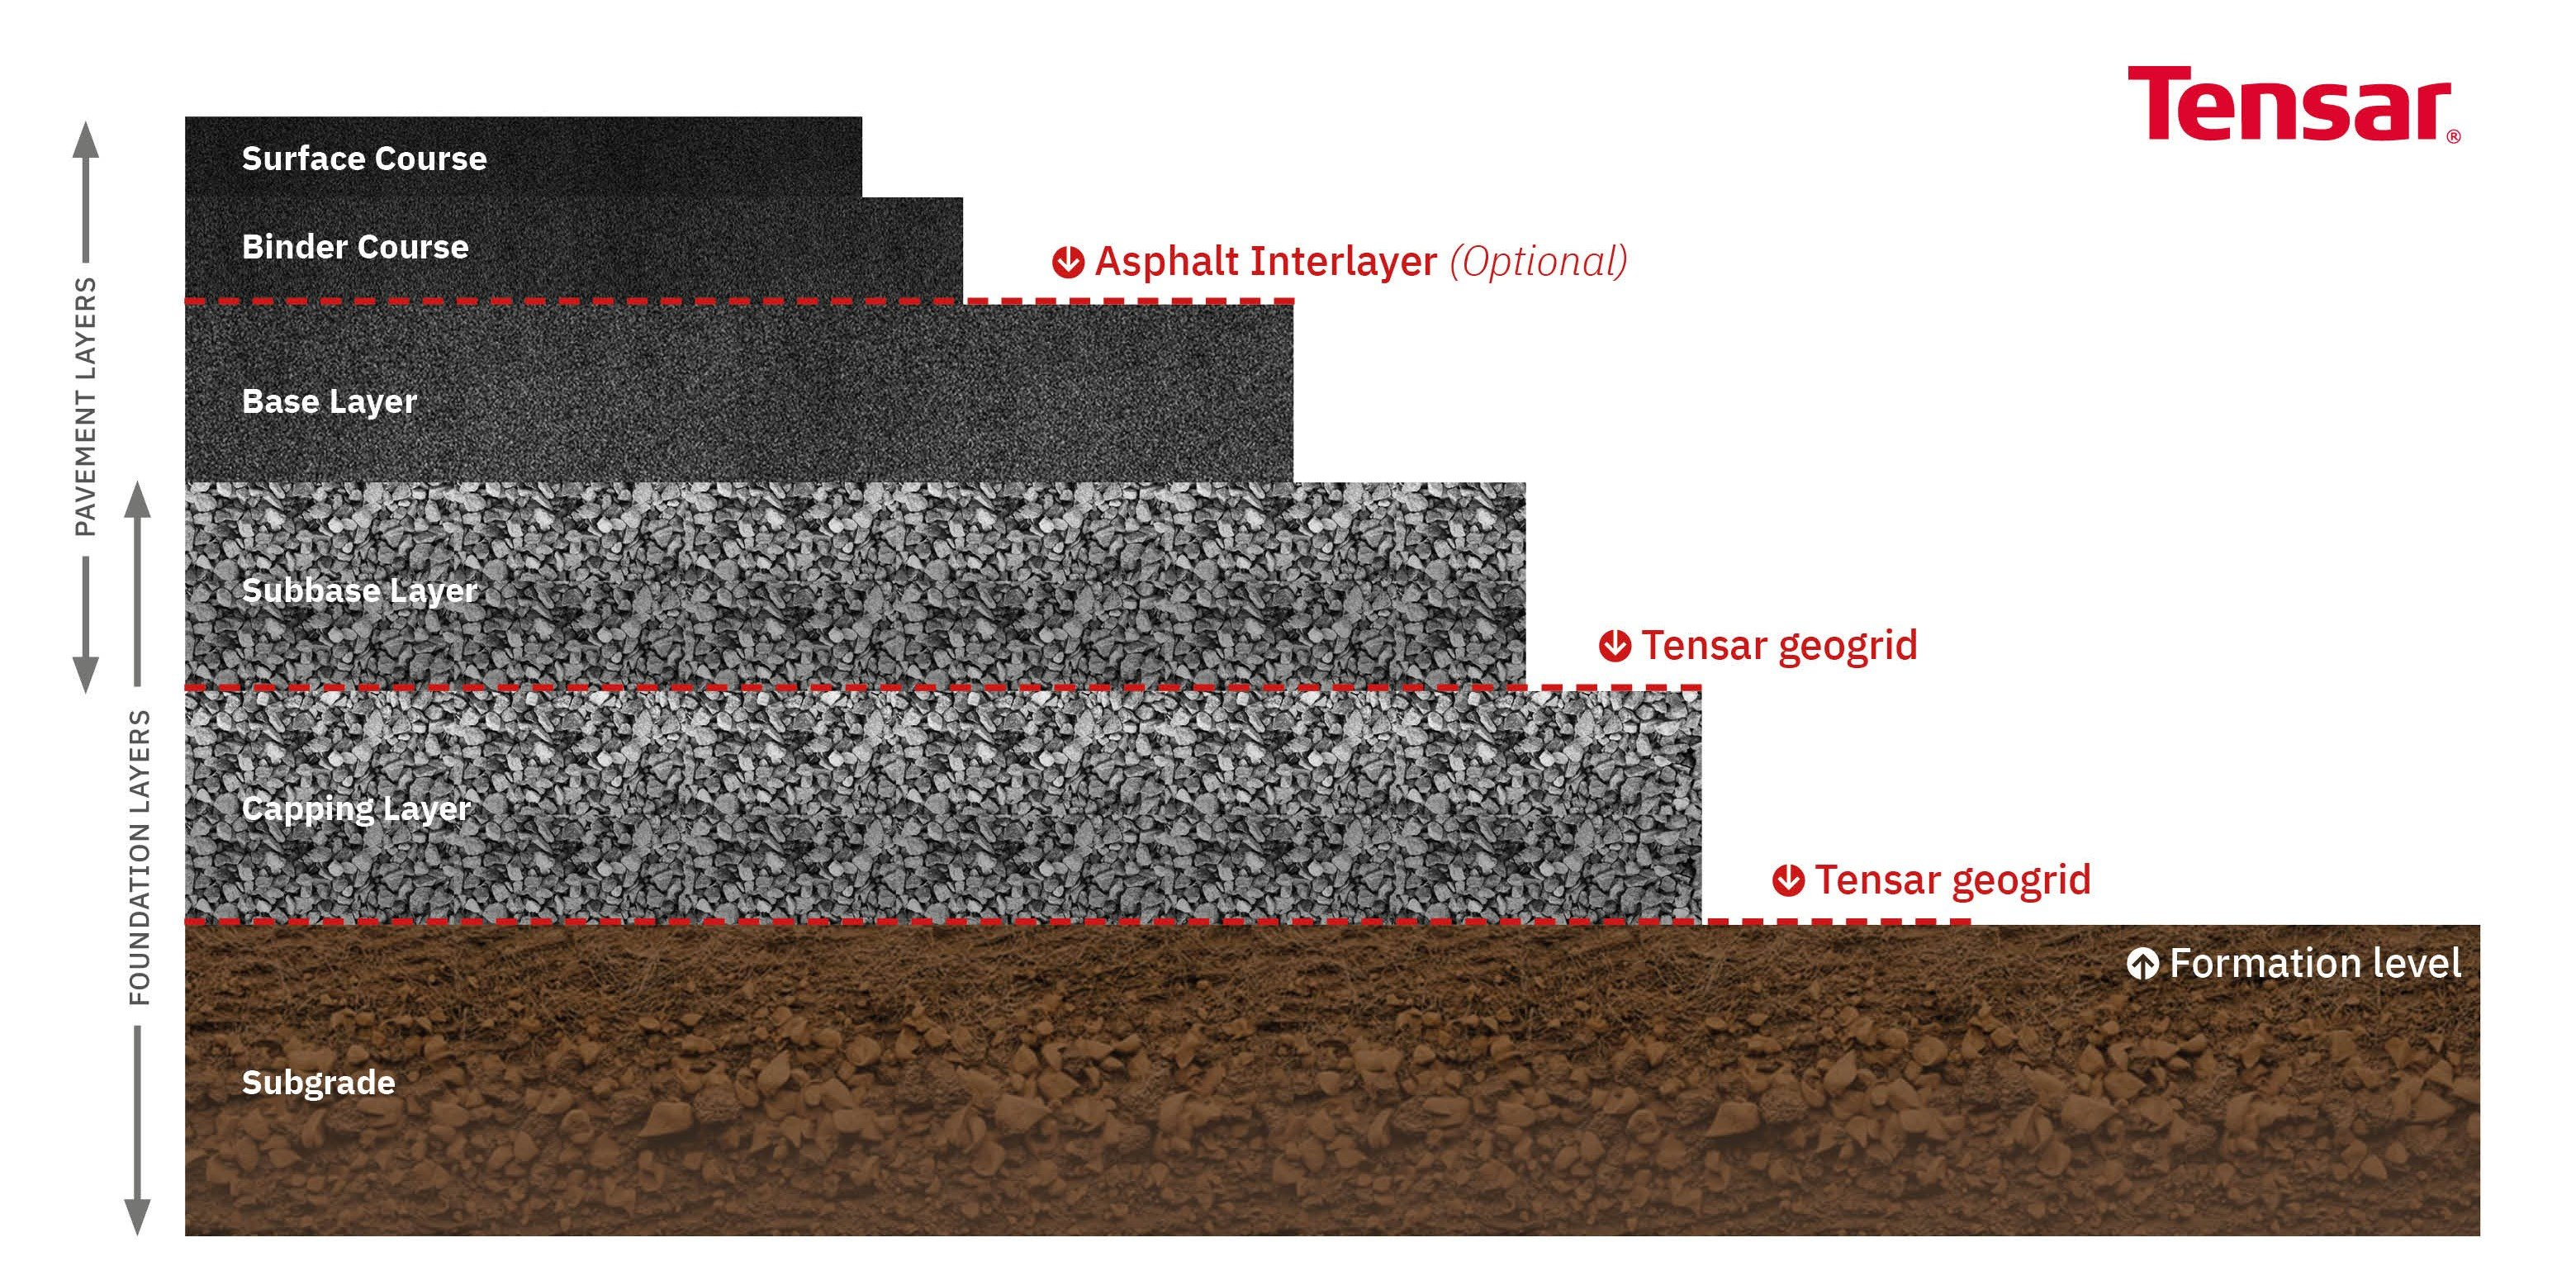 What are the function of layers in a flexible pavement?